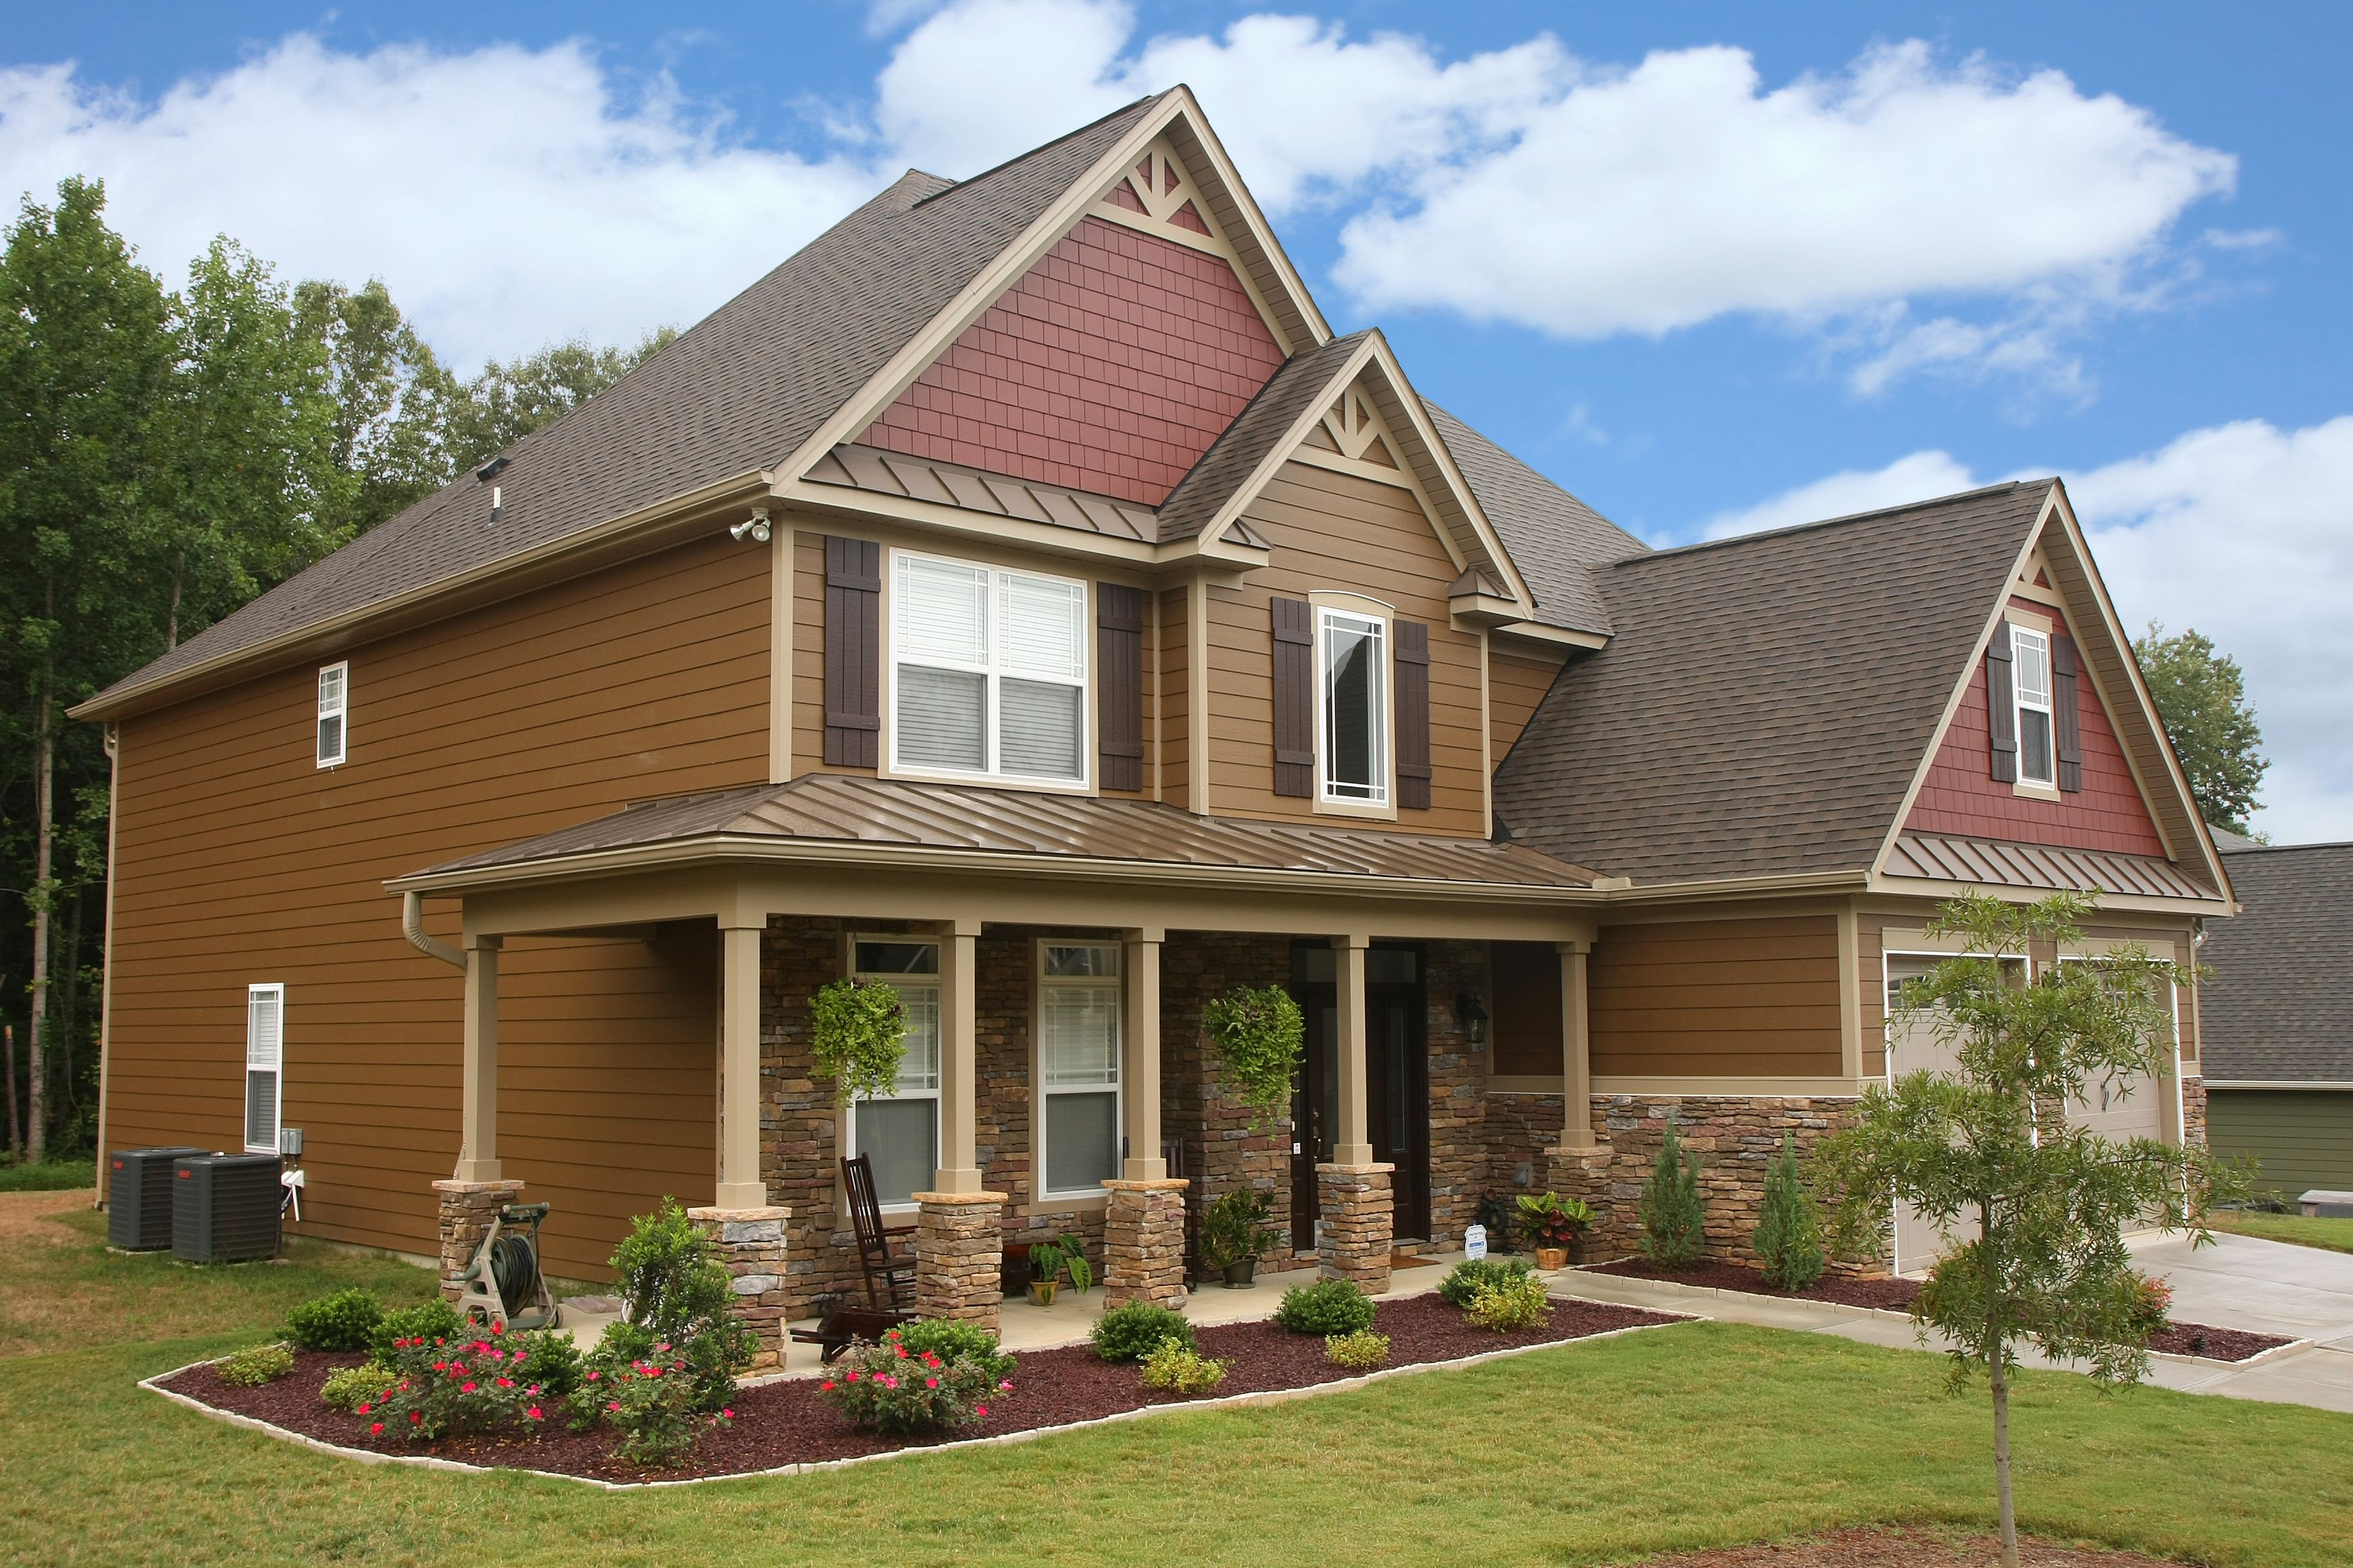 Superb James Hardie Fiber Cement Siding And Trim Combine Beautiful Design With  Superior Performance.